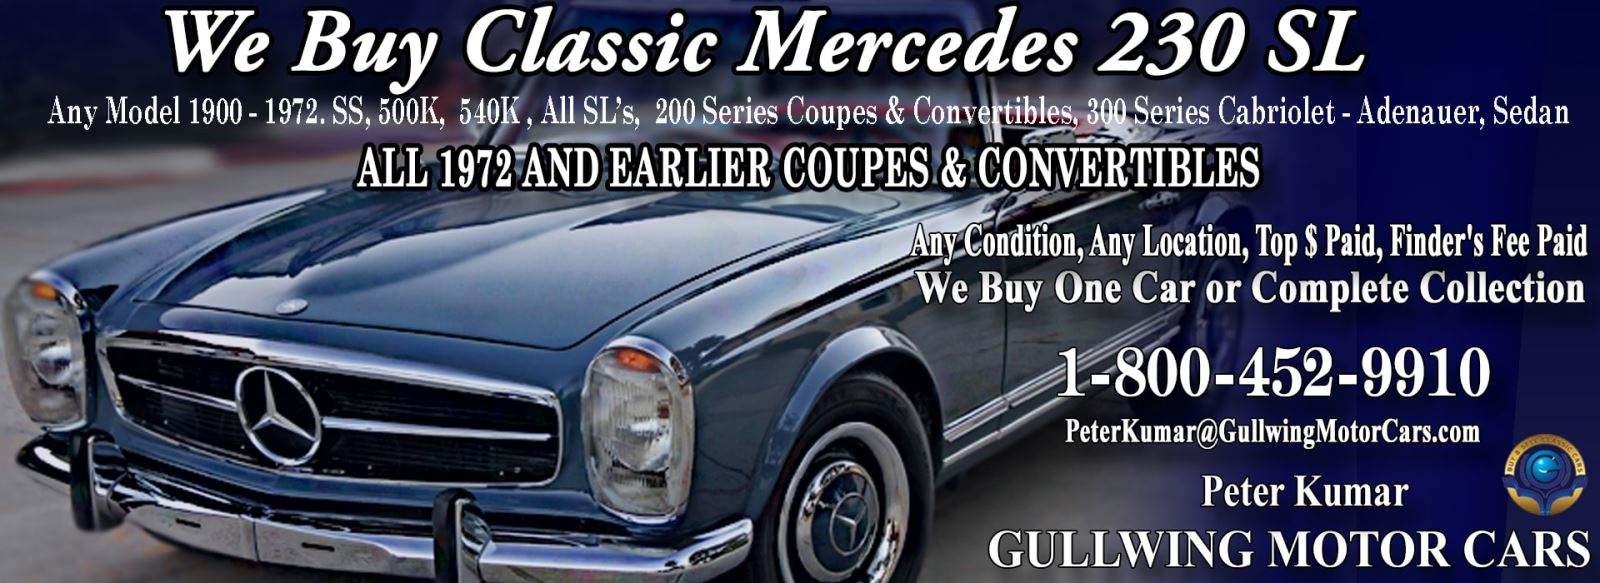 Classic Mercedes 230SL for sale, we buy vintage Mercedes 230SL. Call Peter Kumar. Gullwing Motor